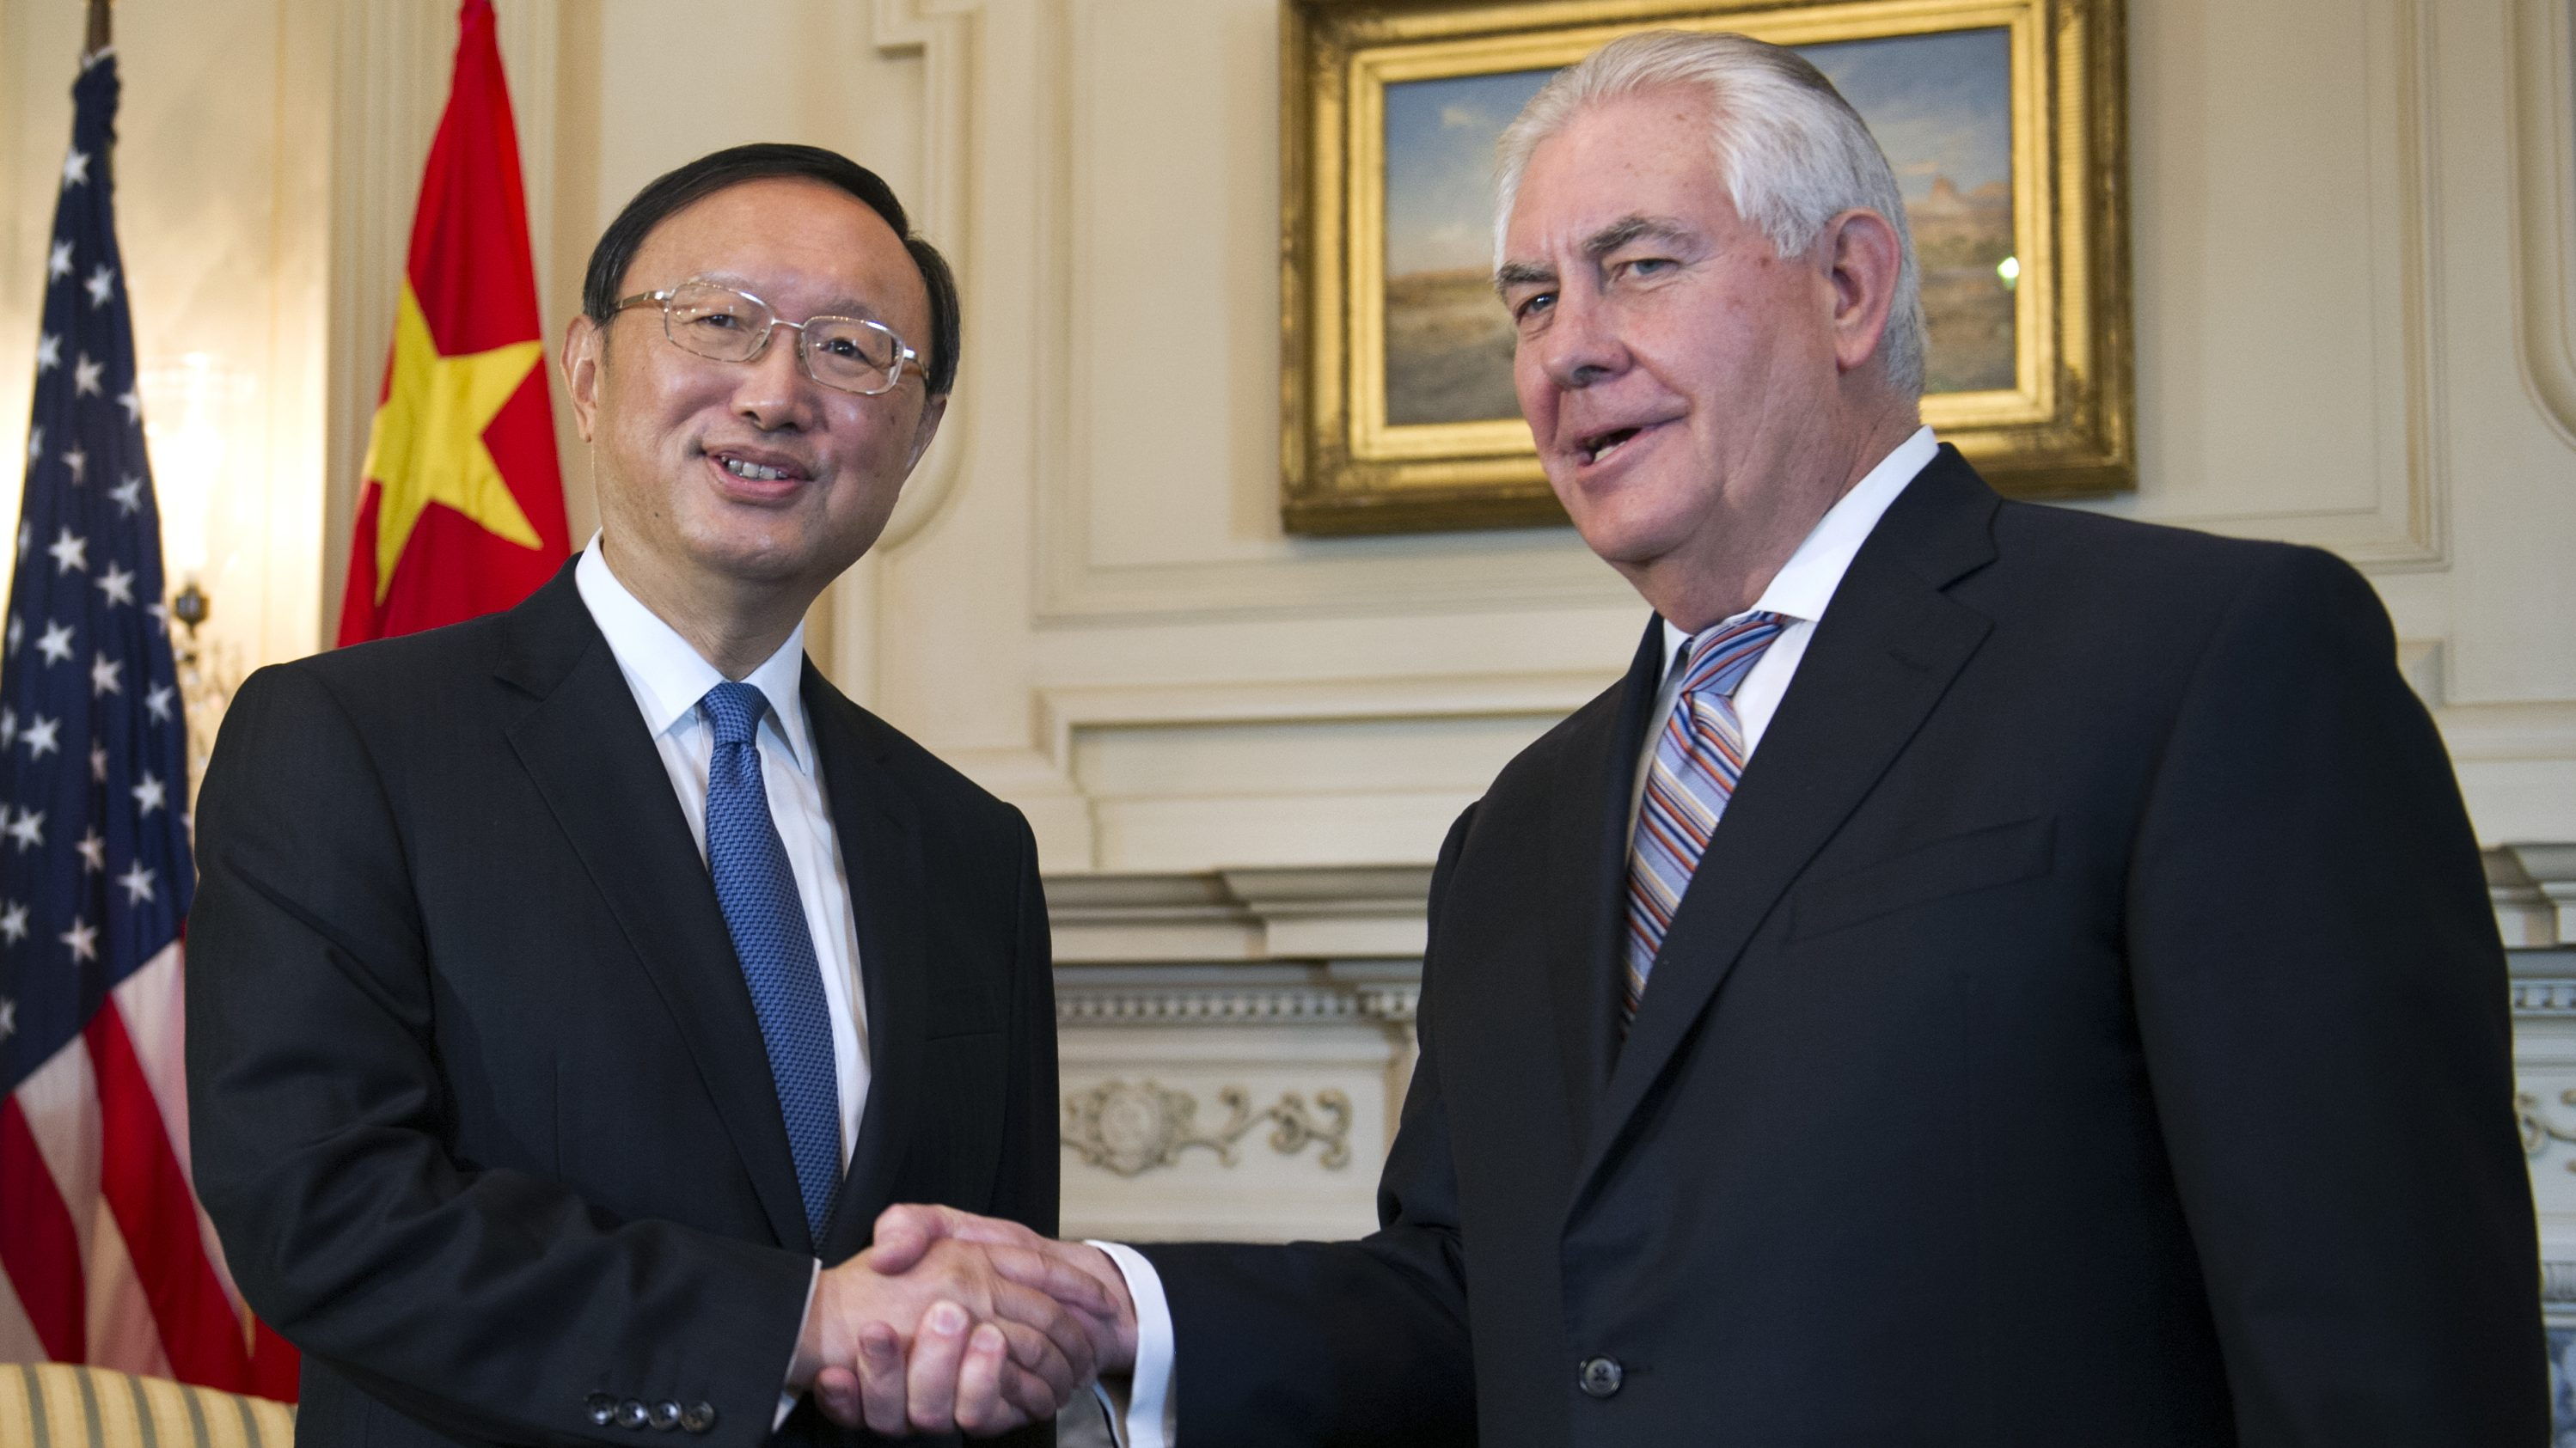 Secretary of State Rex Tillerson shakes hands with Chinese State Councilor Yang Jiechi at the State Department in Washington, Tuesday, Feb. 28, 2017.